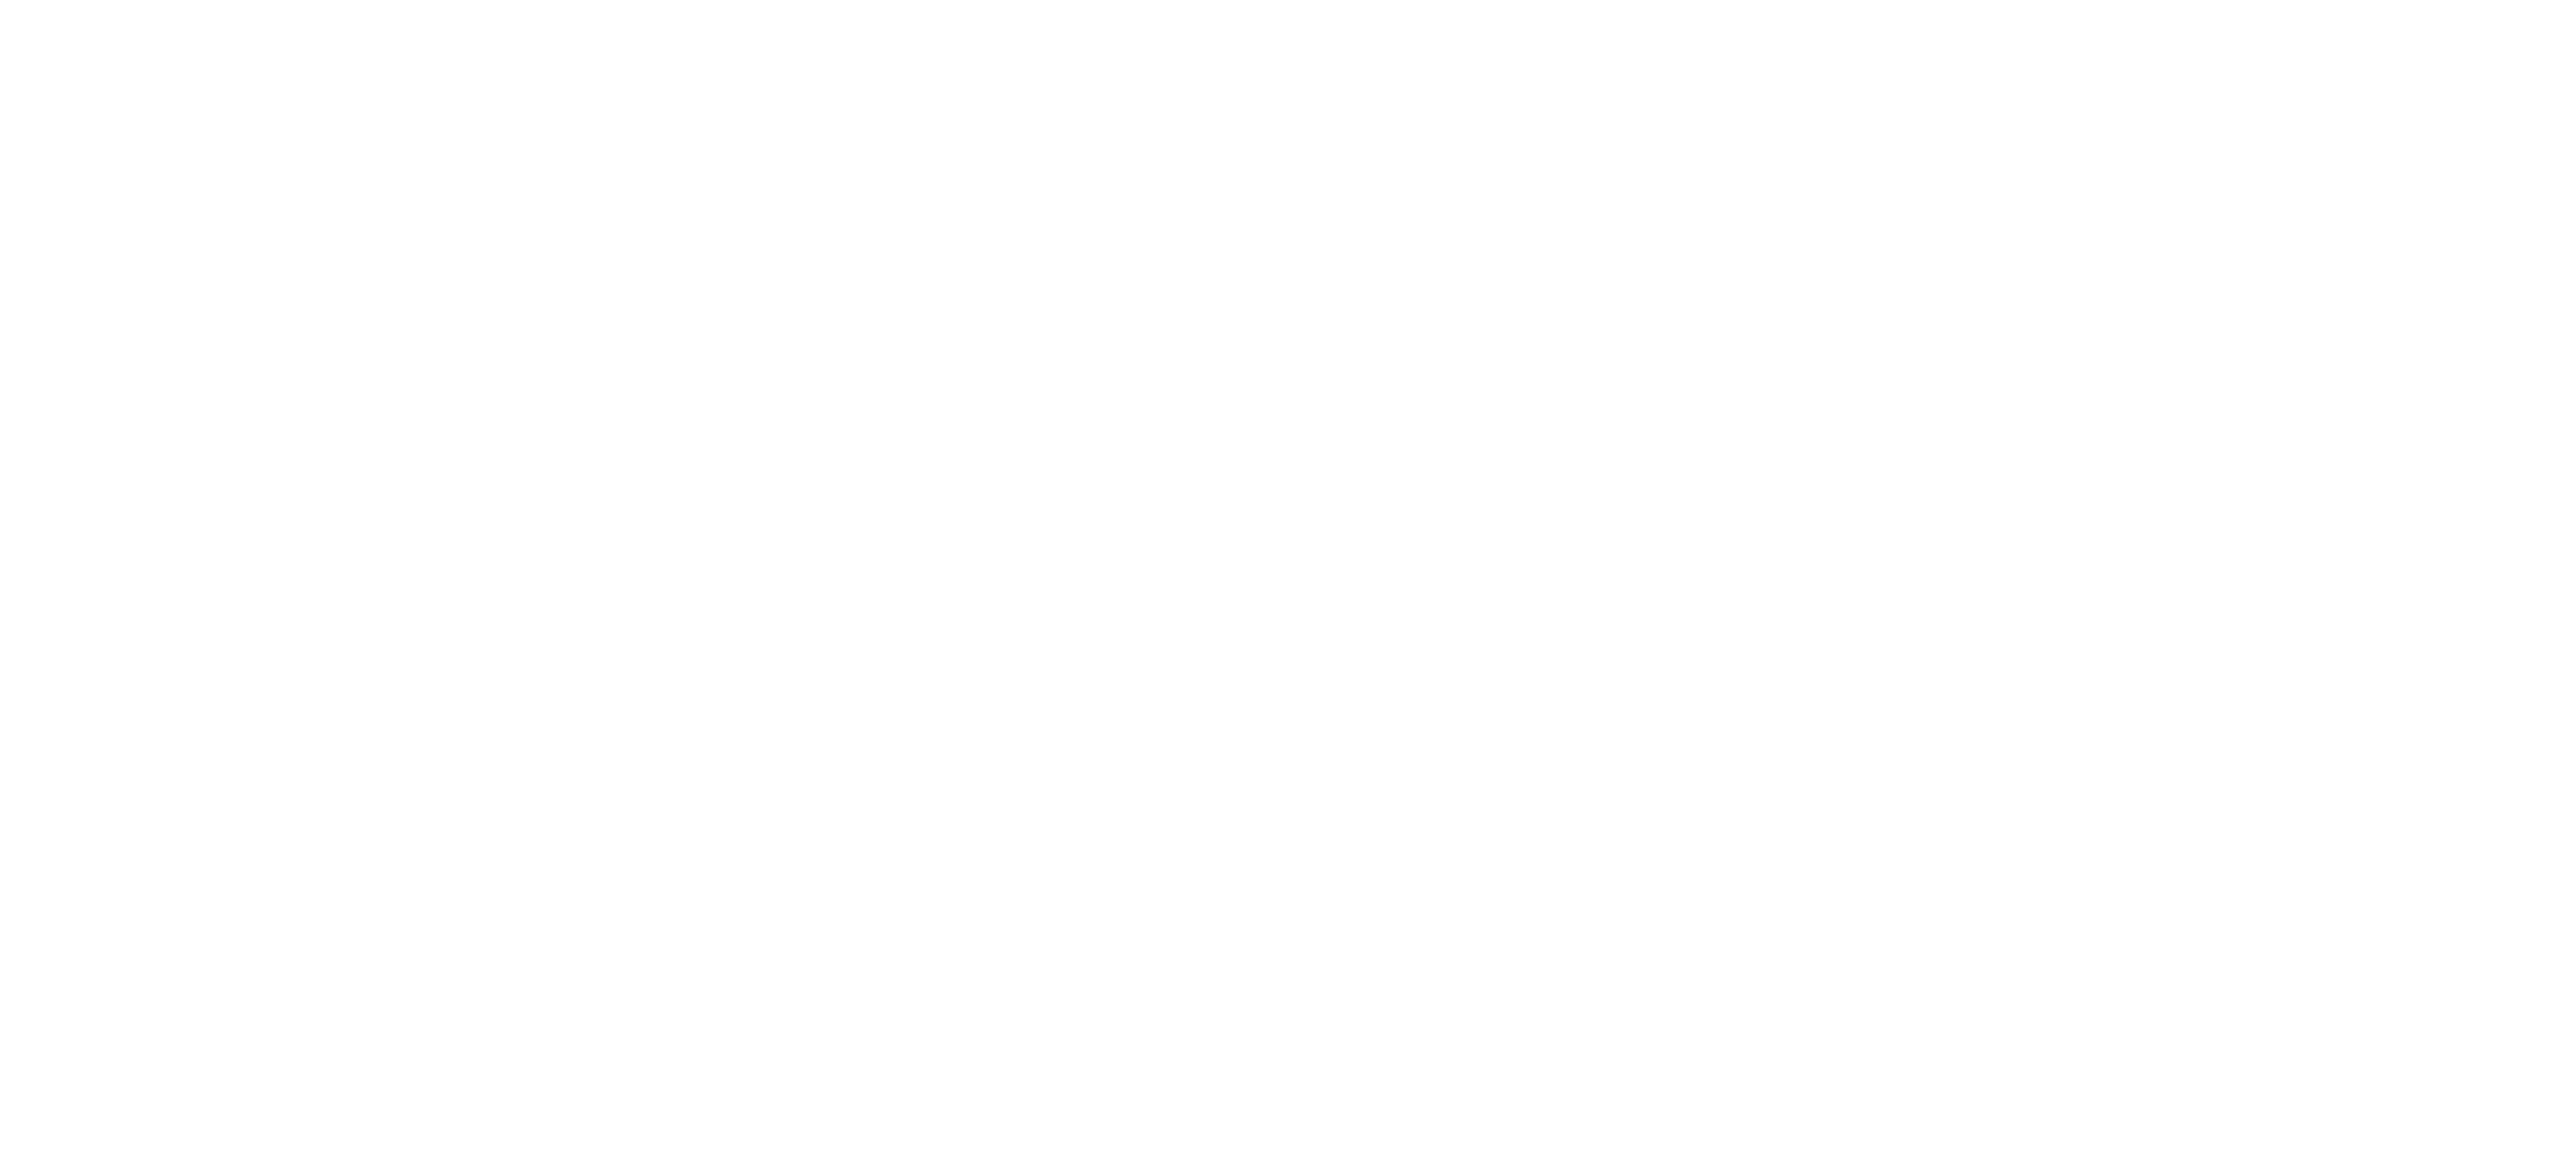 The New Mexico Democratic Party